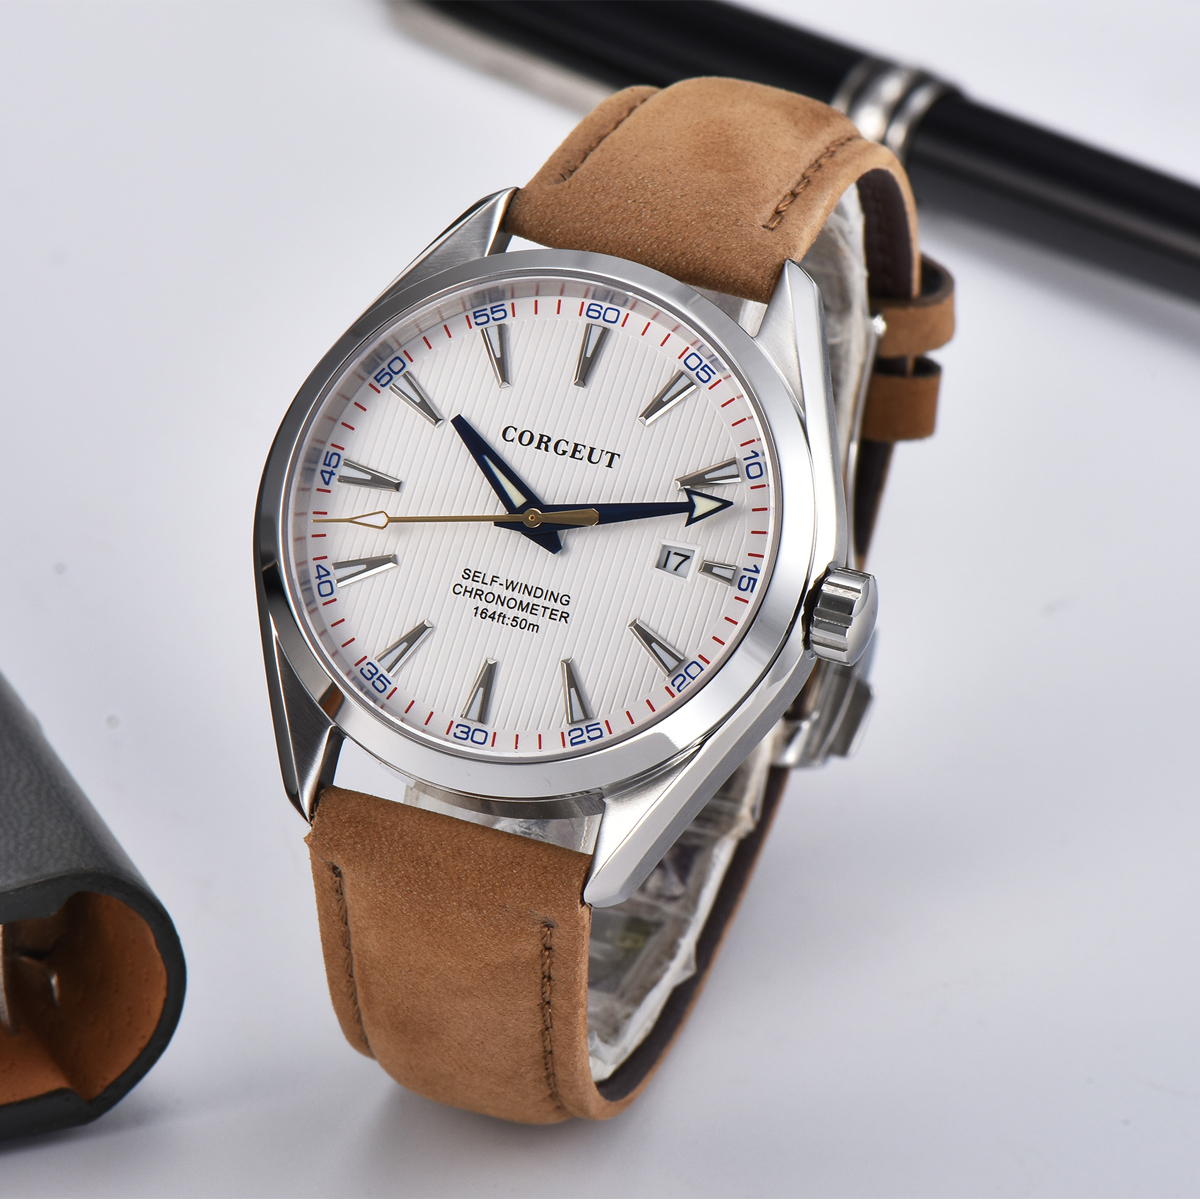 41mm Corgeut mens watch white dial Date calendar Automatic Mechanical Sapphire crystal leather wristwatch men luxury top brand